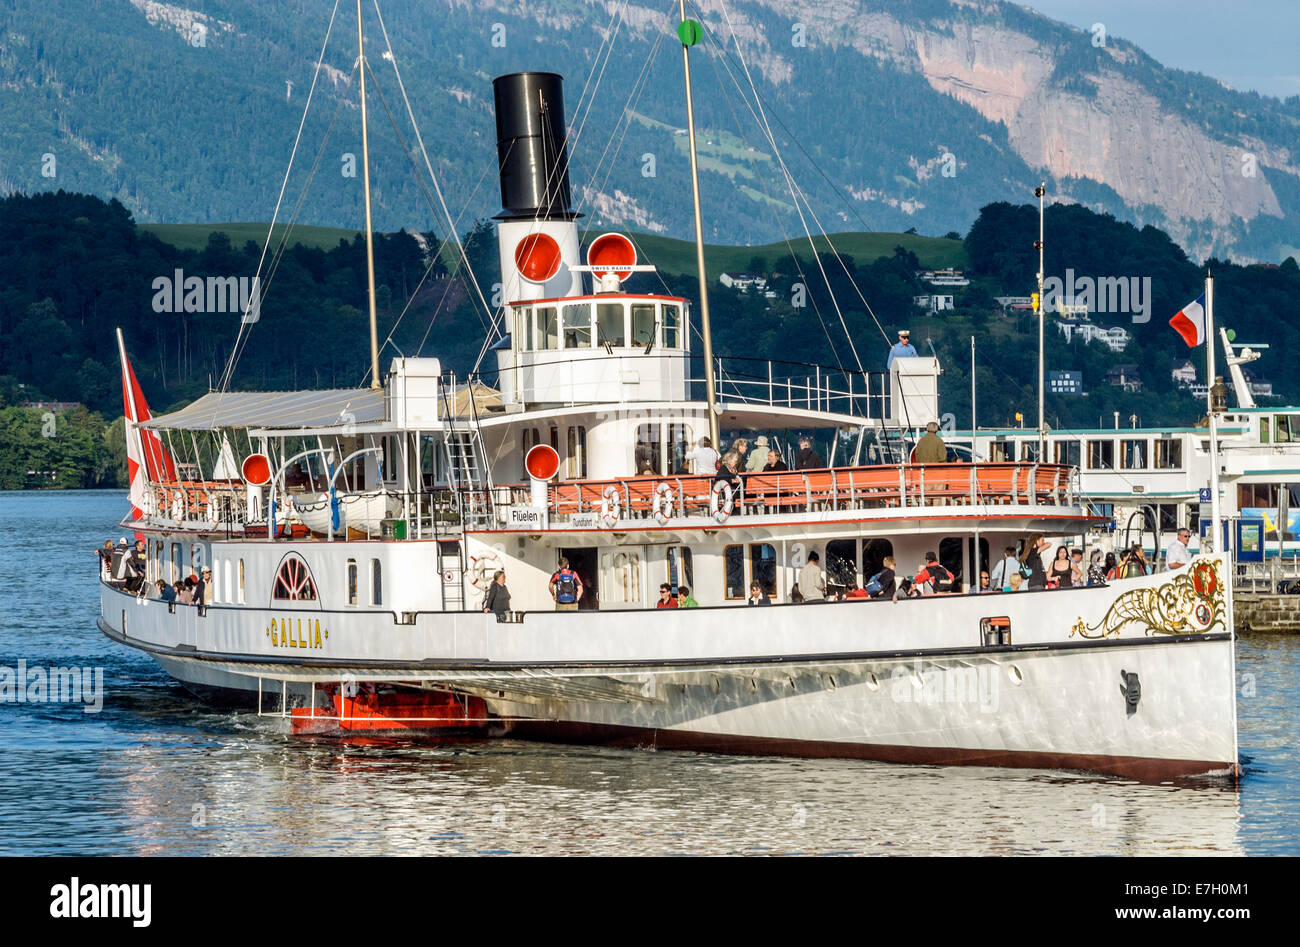 Paddle Wheel Steamer at Lake Lucerne in Switzerland Stock Photo